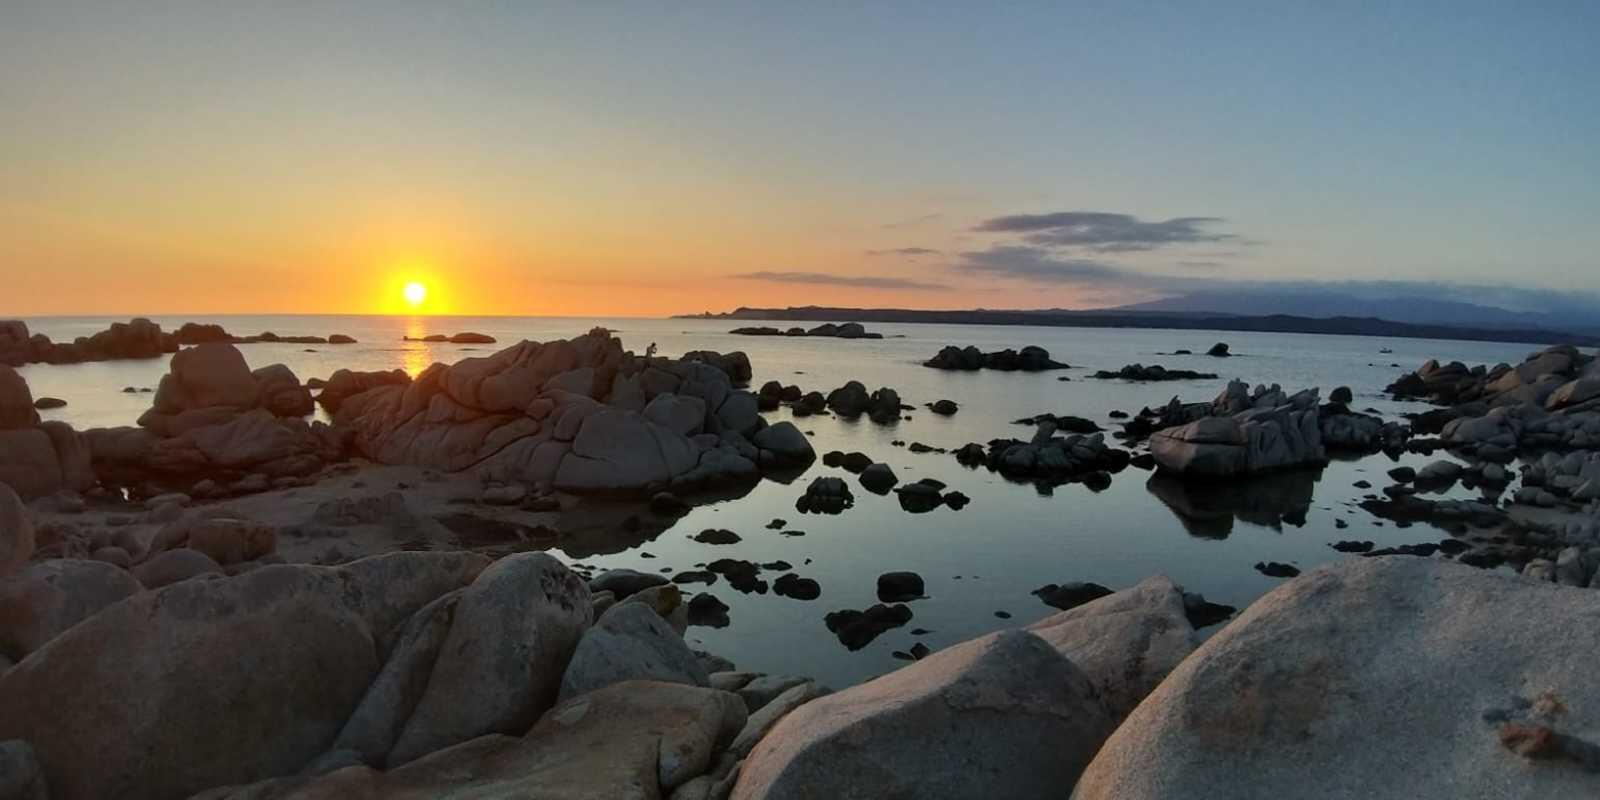 The Usual Unknowns to the Maddalena Archipelago